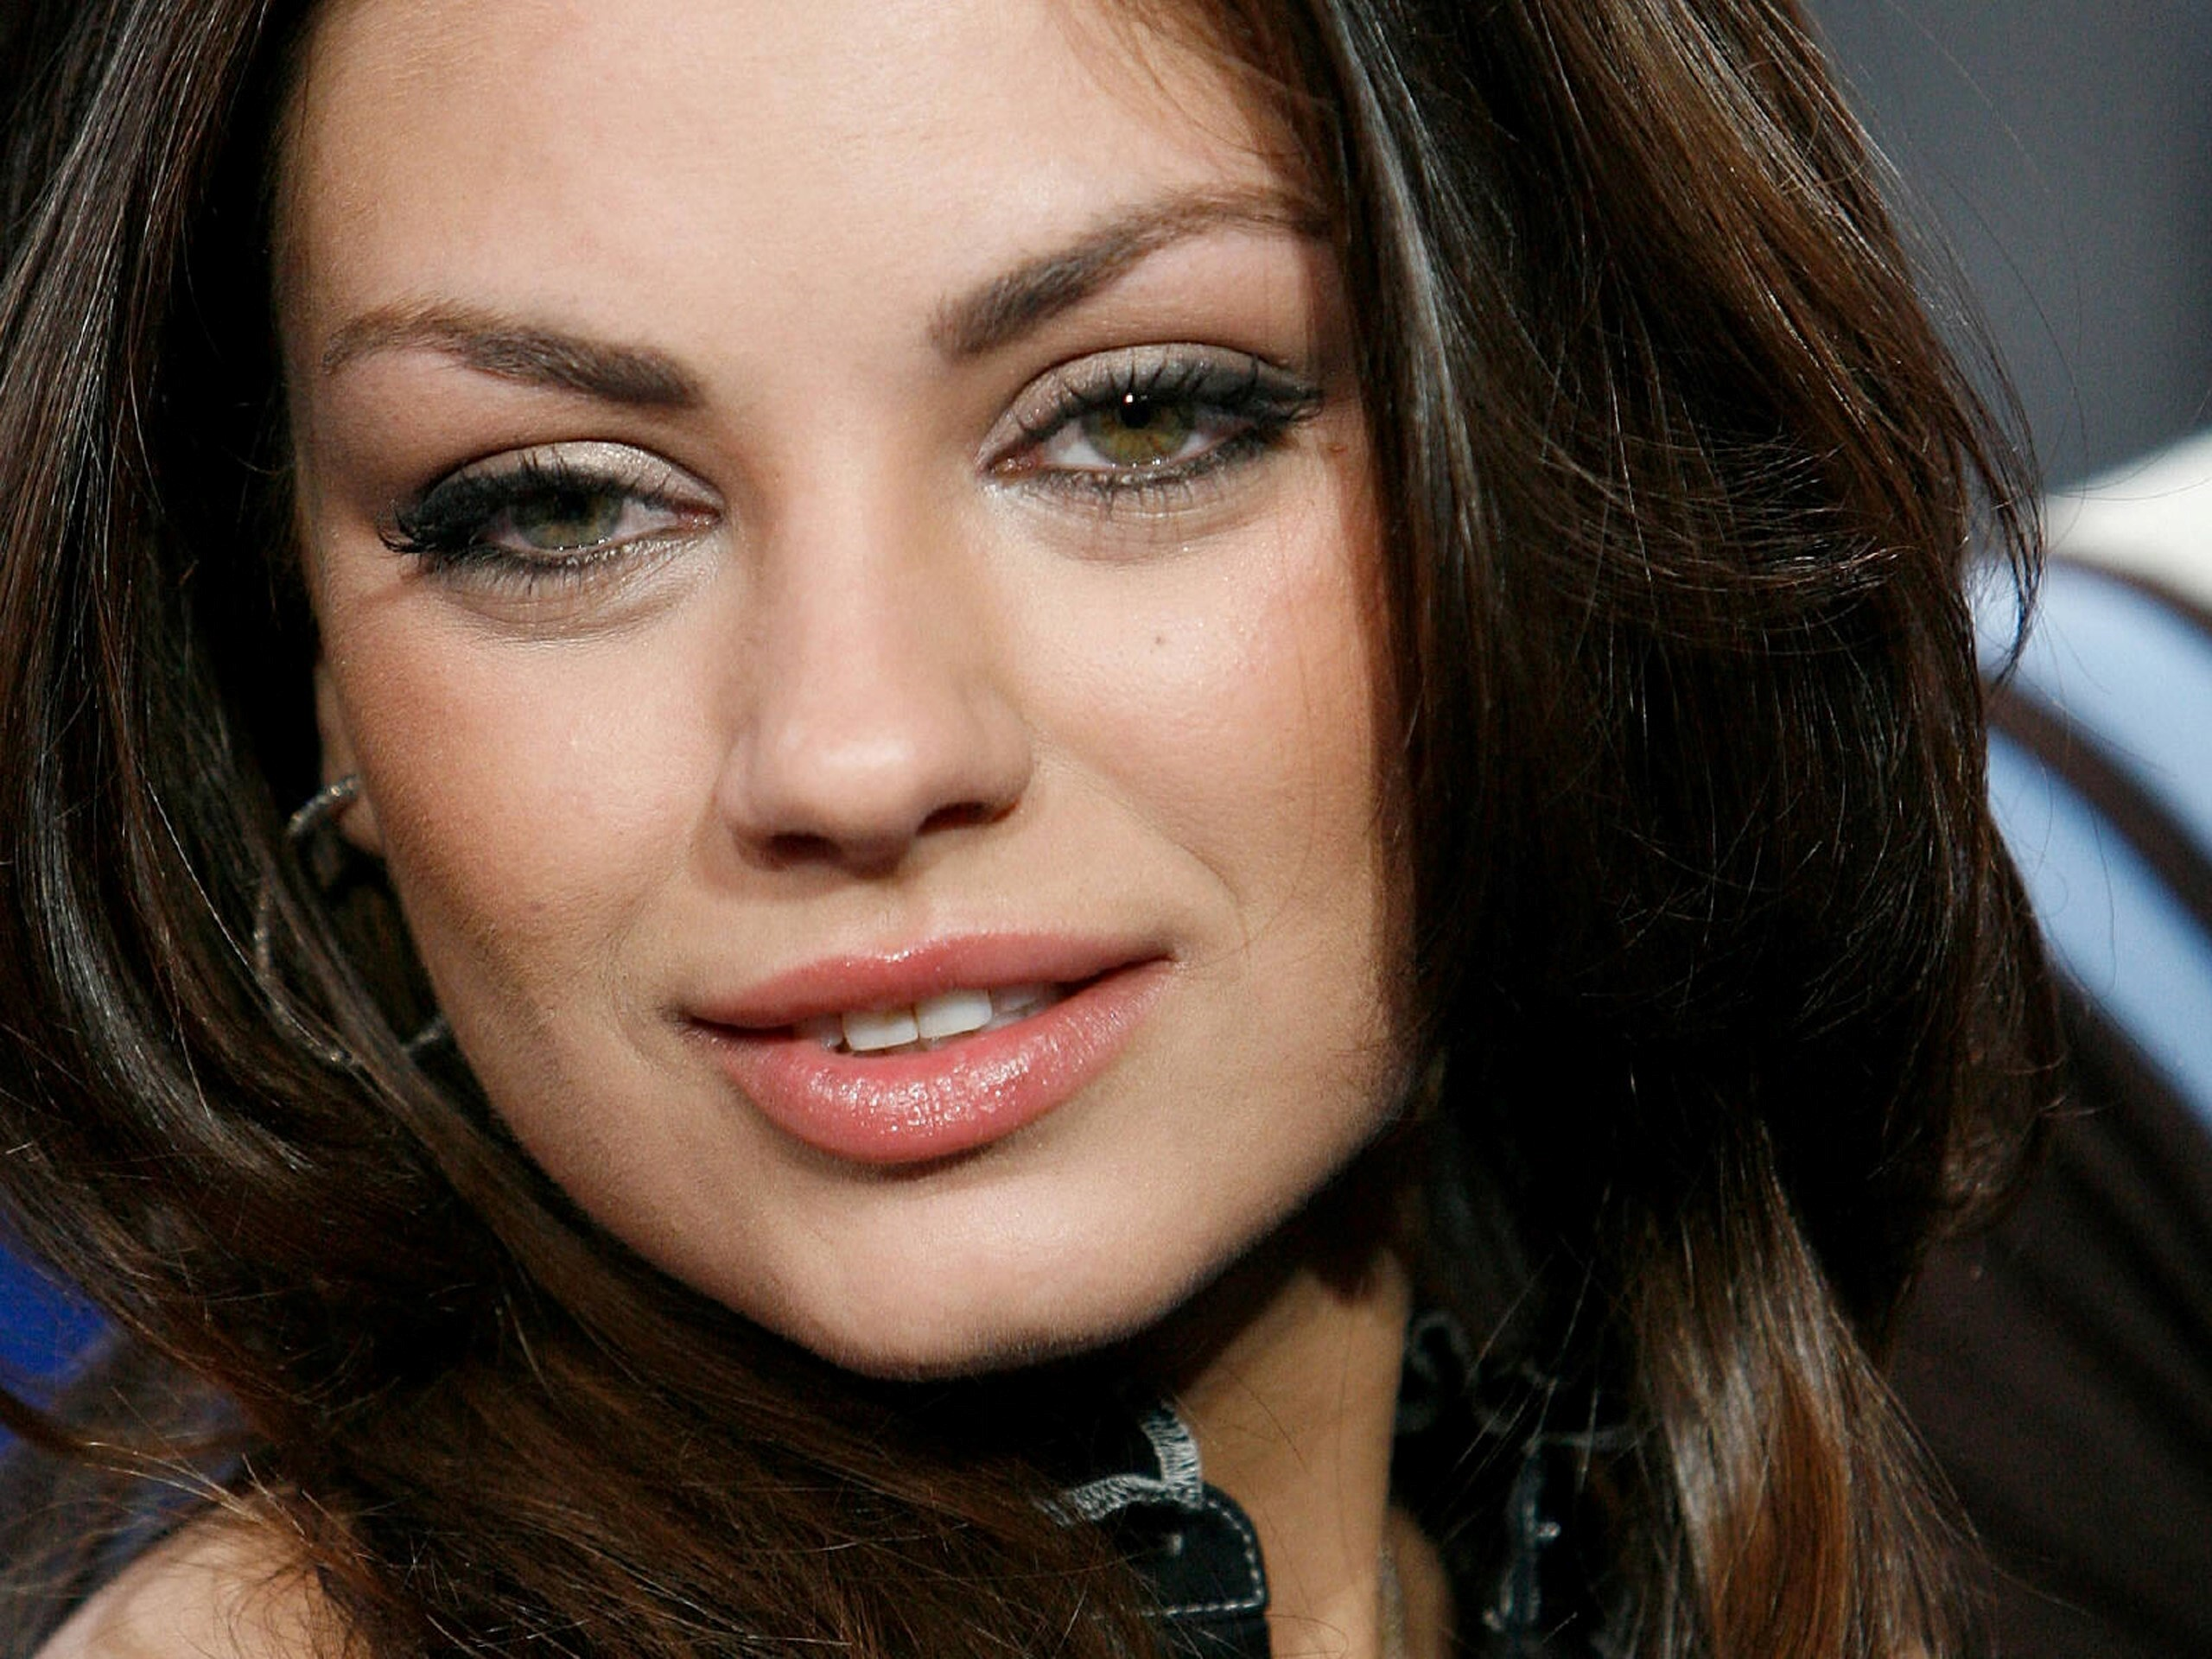 mila kunis face actress hollywood wallpapers hd